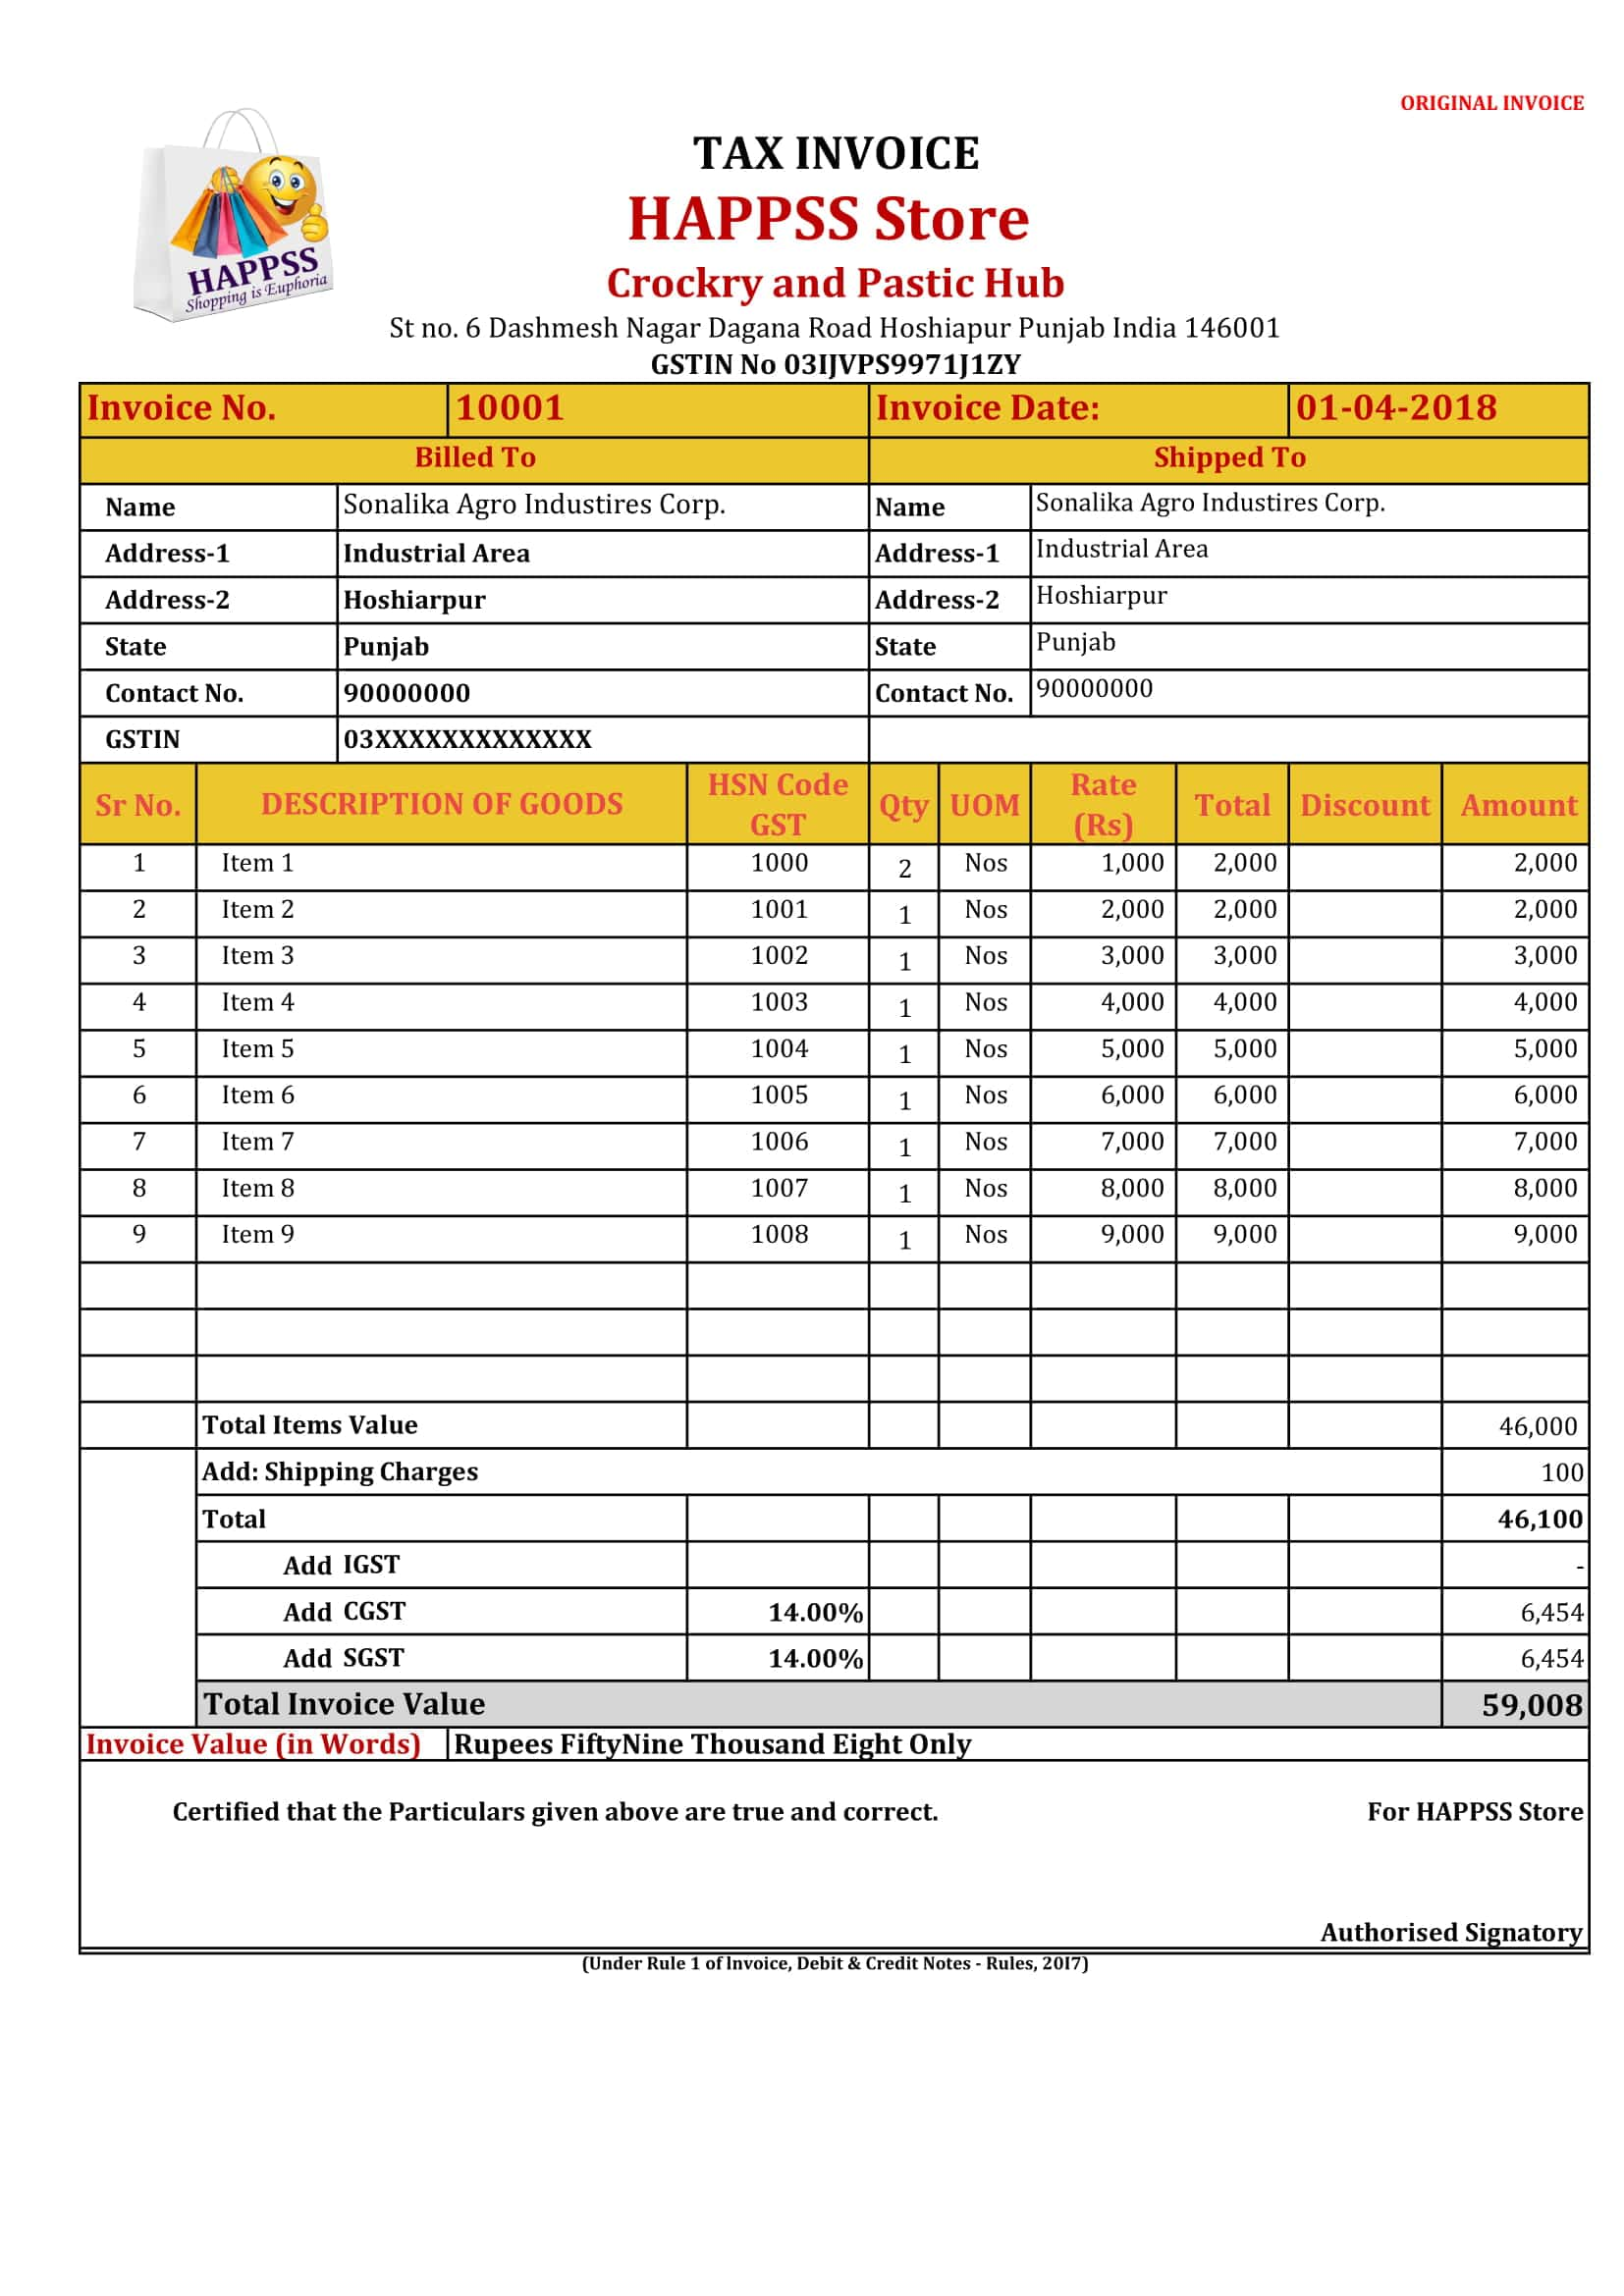 gst invoice 1 - GST Invoice Format In India |Dynamic Excel sheet